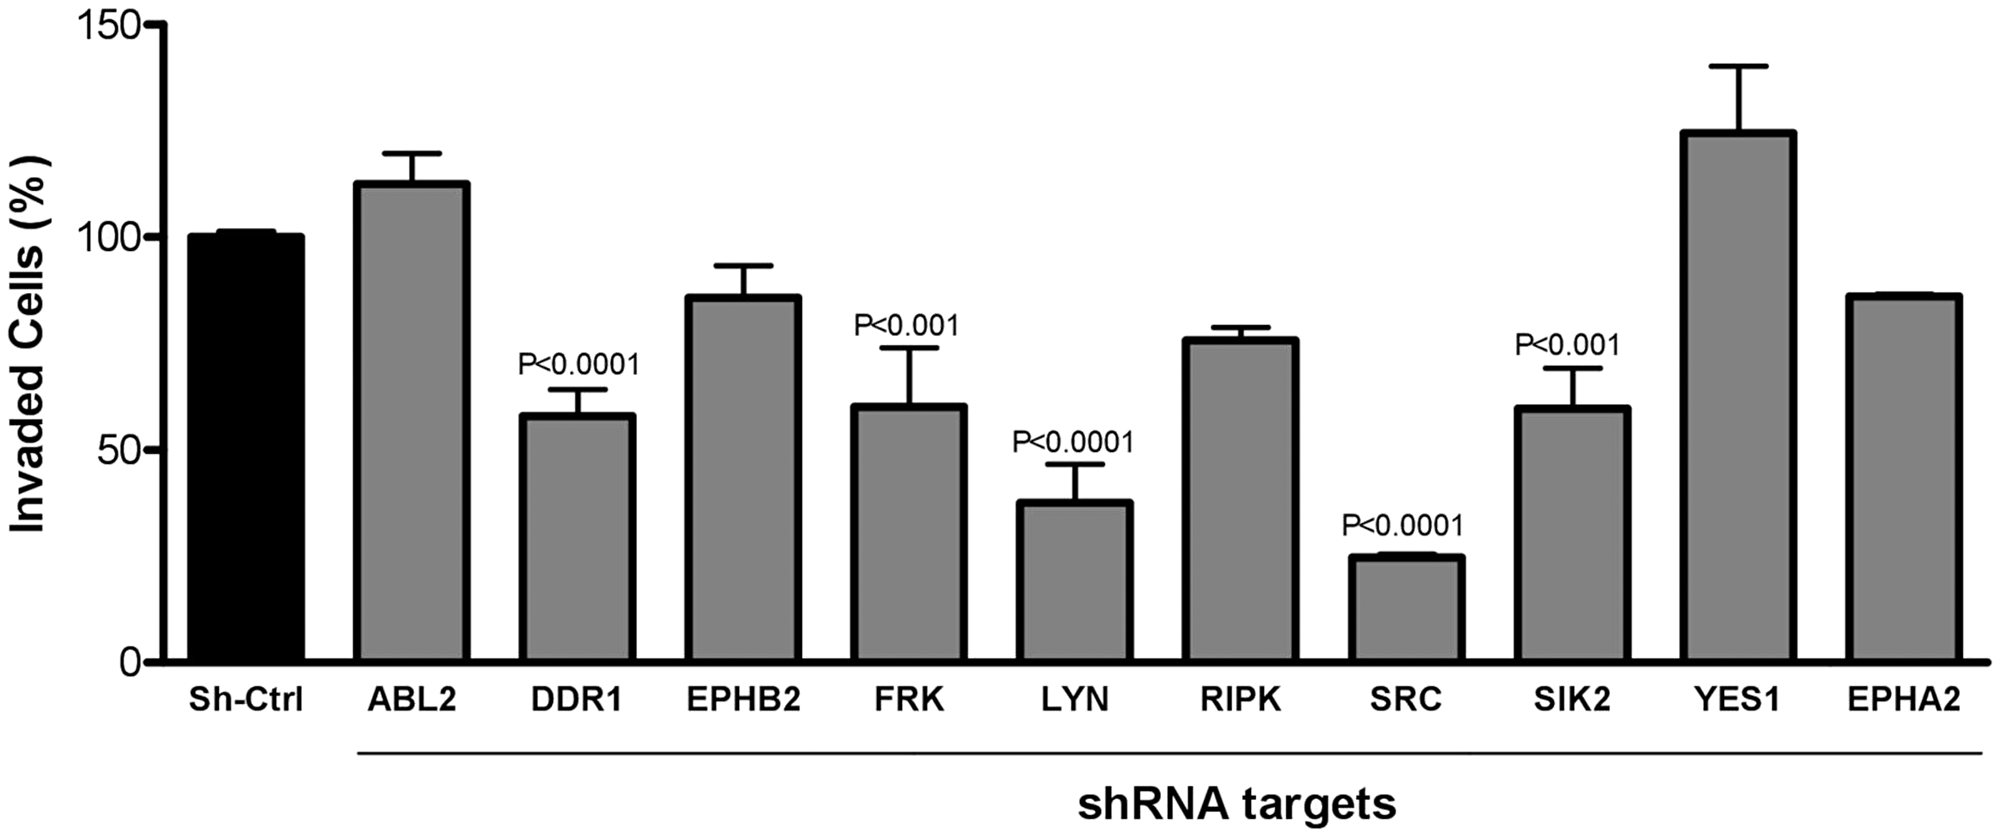 Inhibition of cell invasion 8 h after silencing target gene expression of kinases highlighted in the Kinobeads assay.